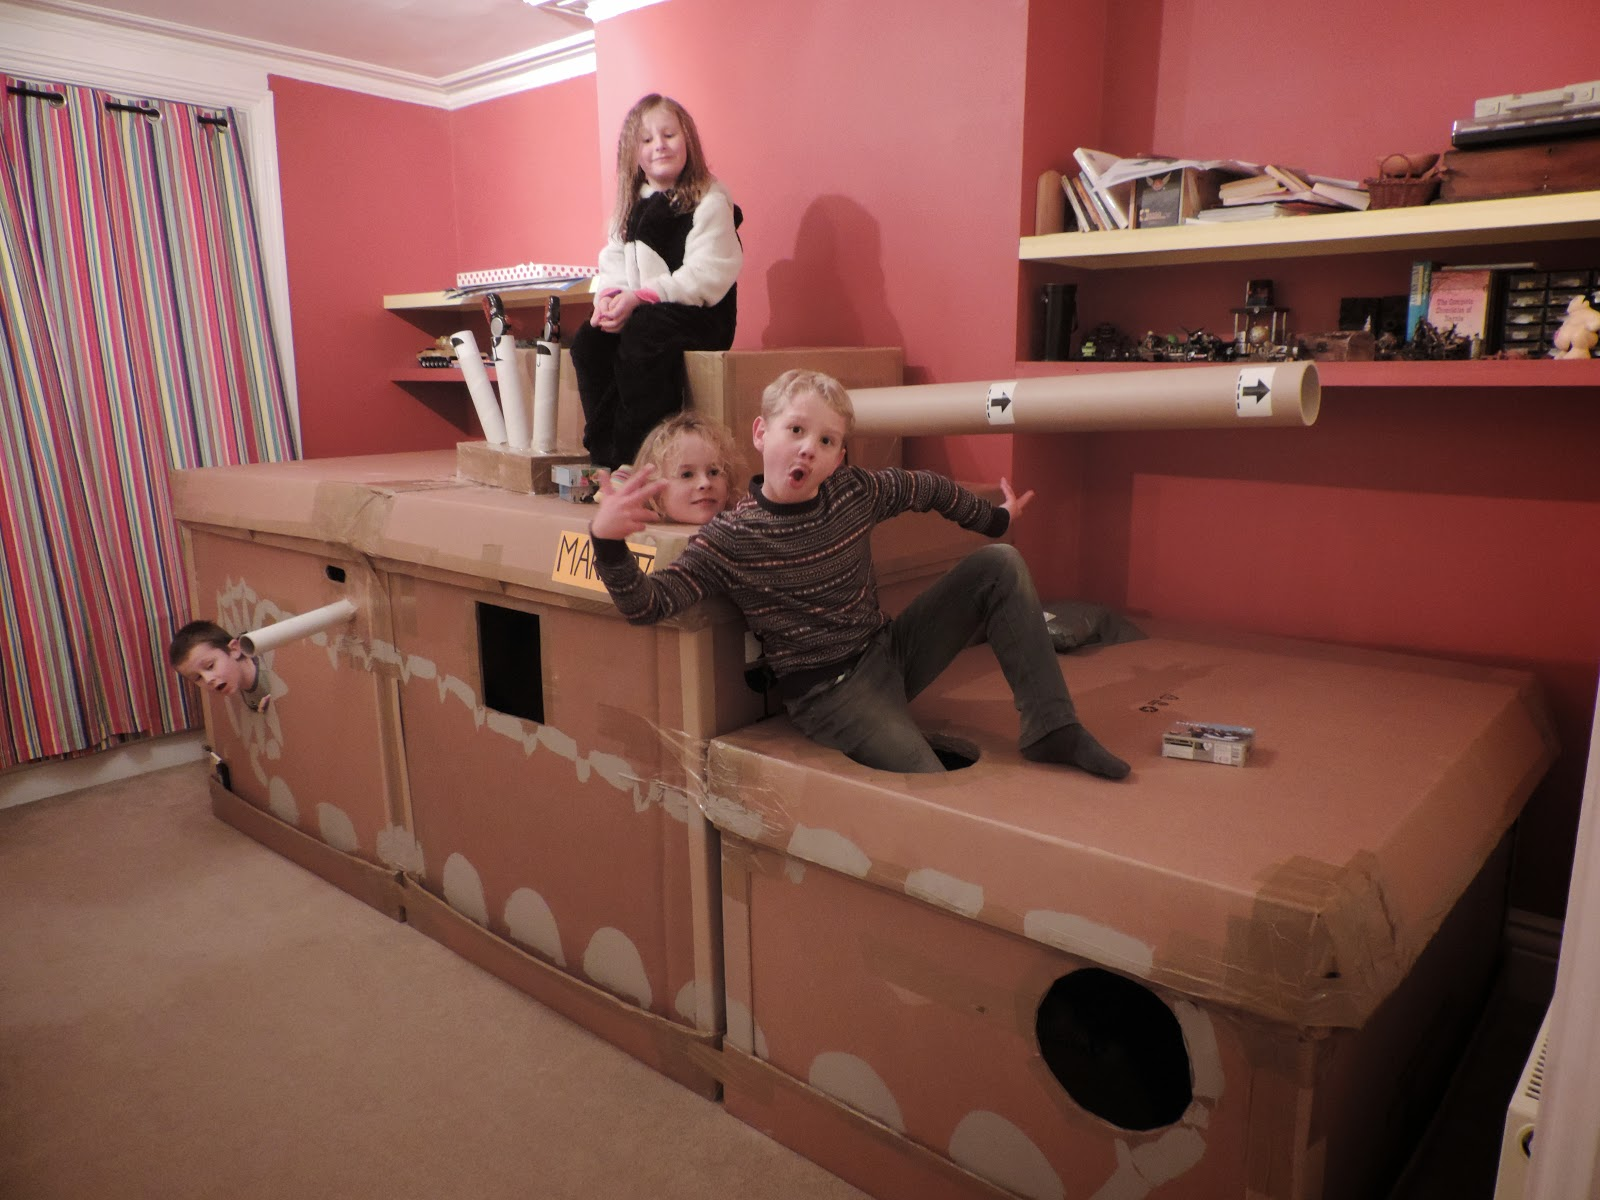 giant tank armoured division keep kids happy during party